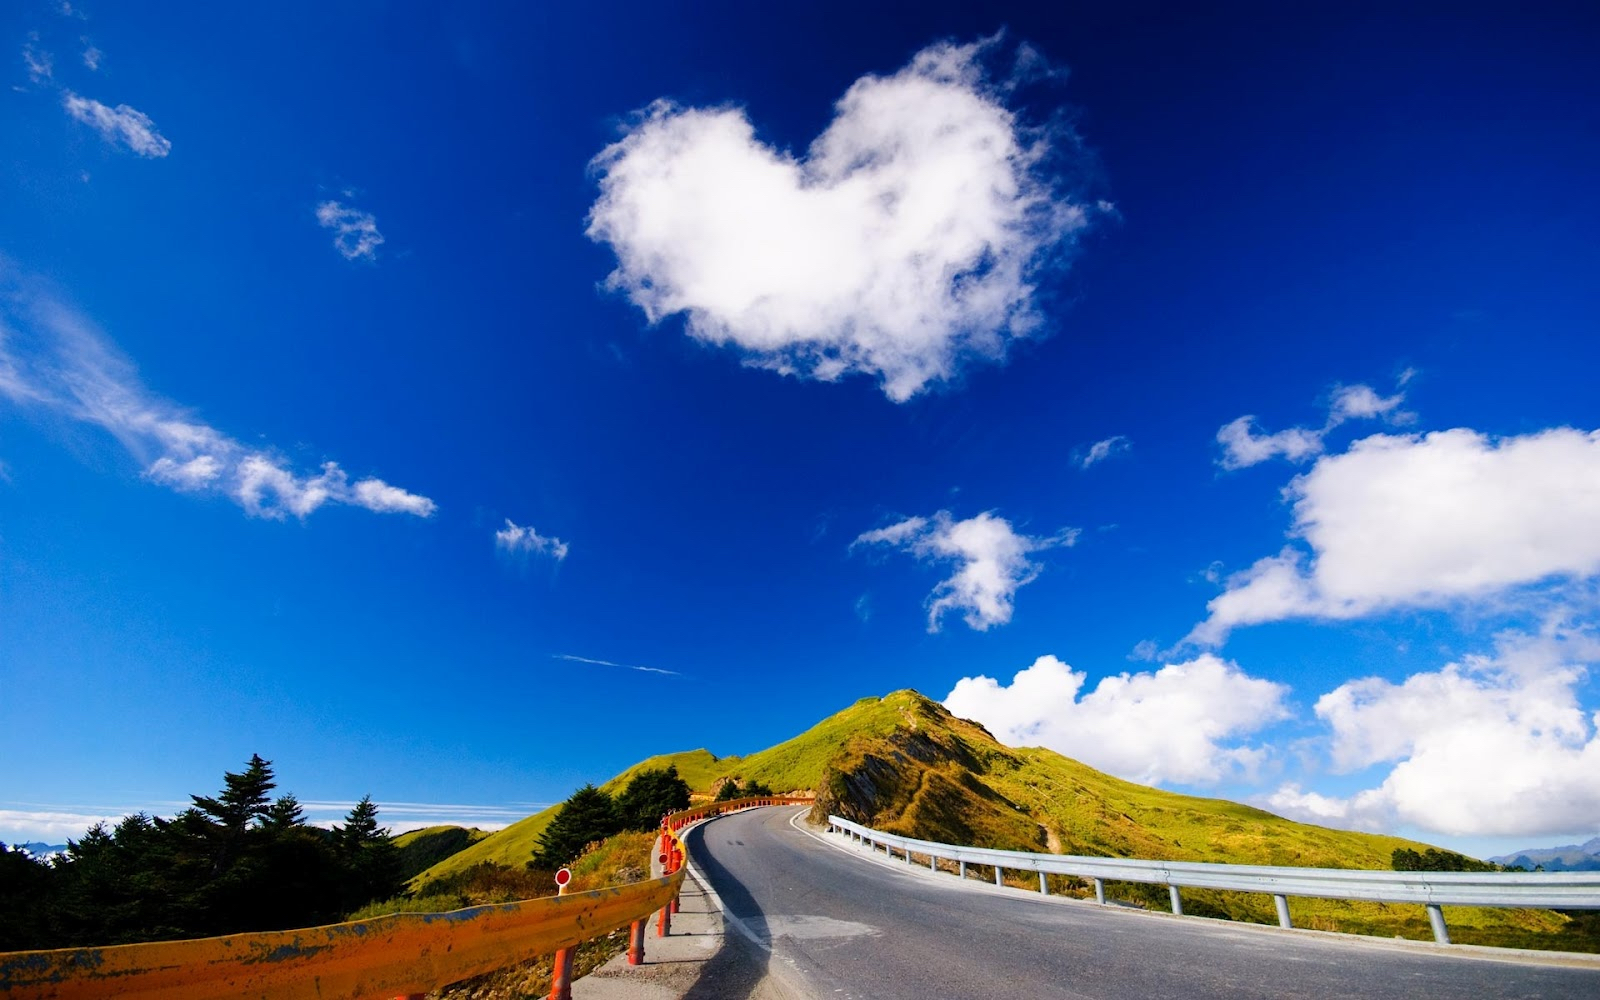 WEB SITE SKY HEART CLOUD.jpg